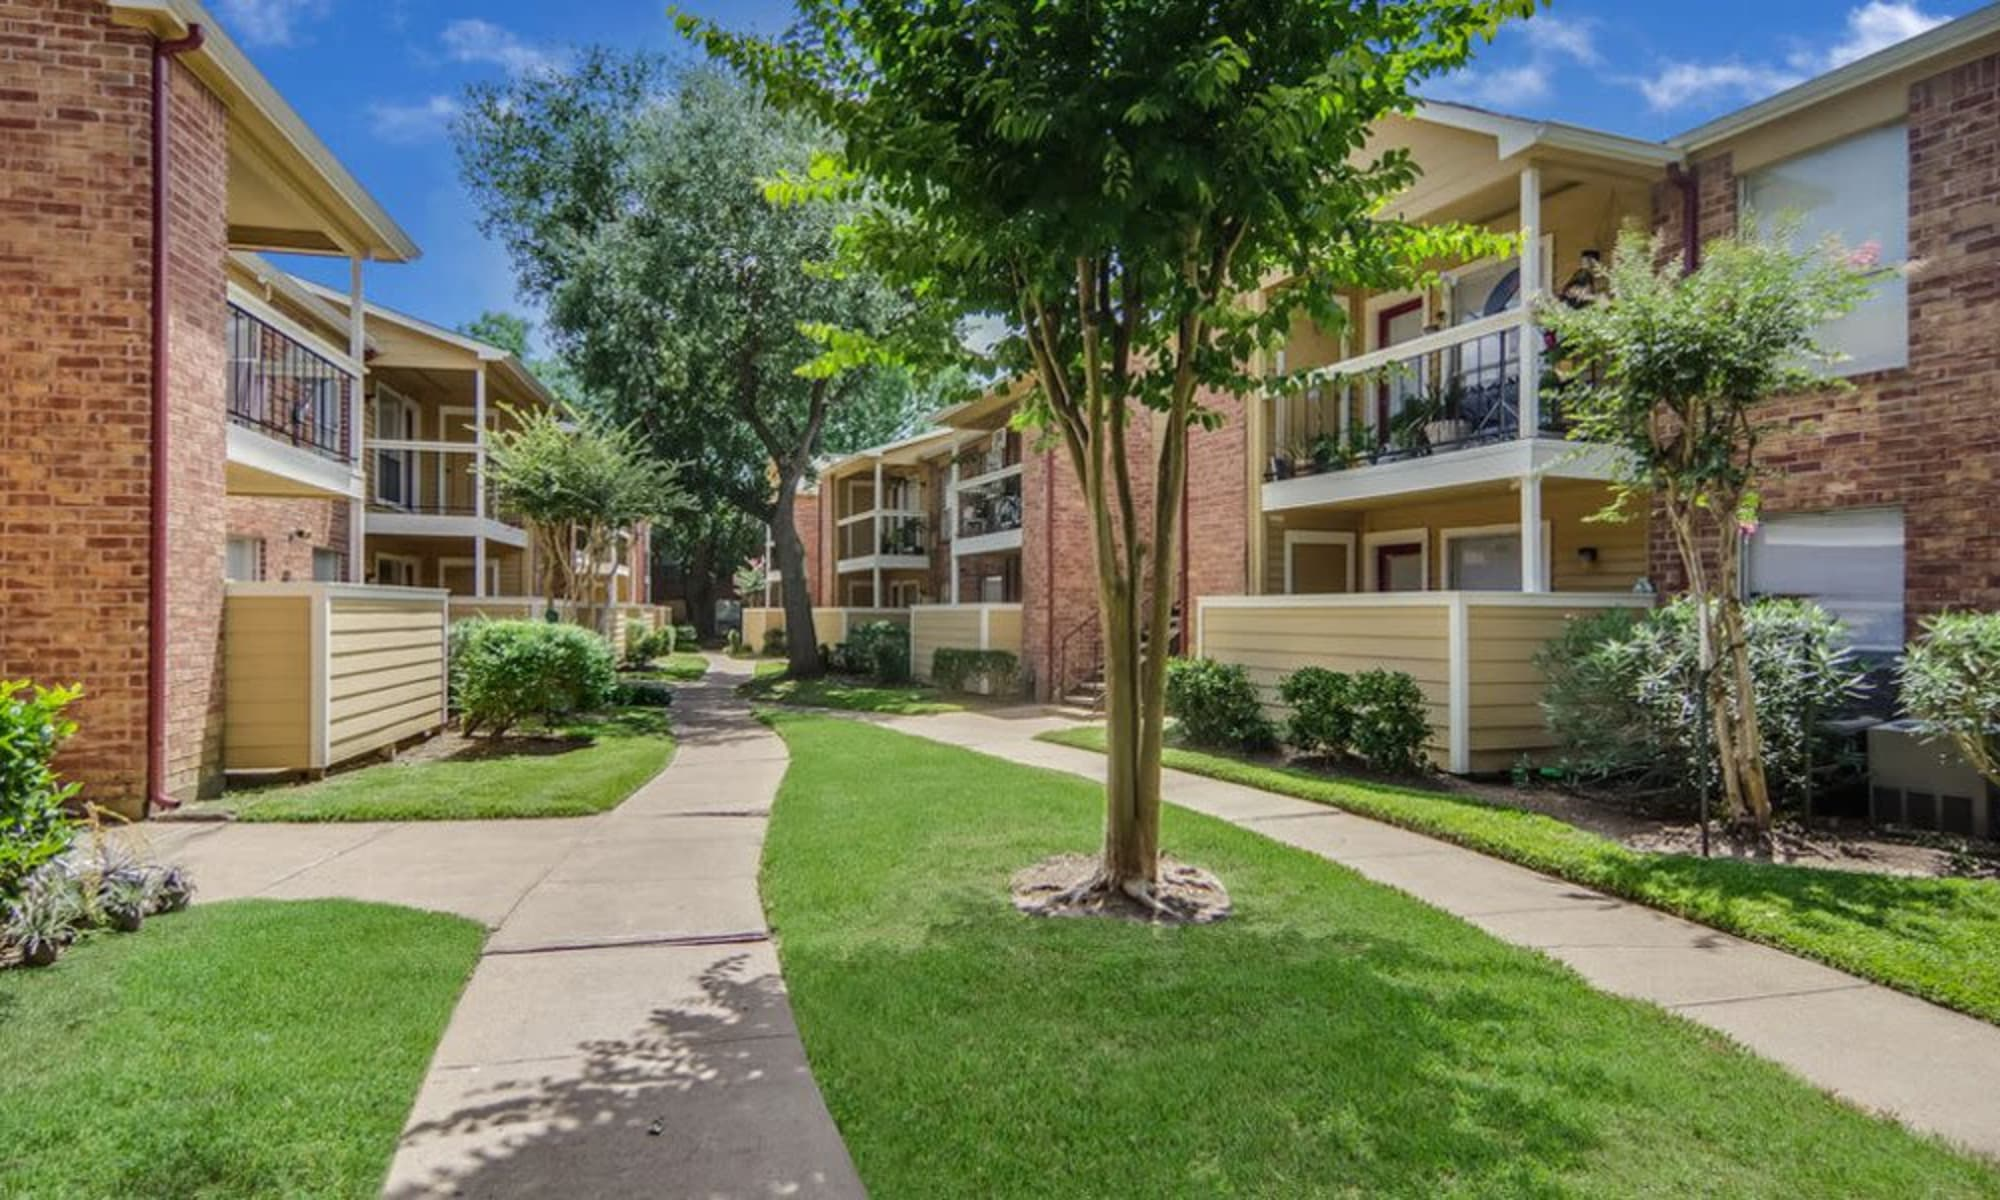 Apartments at Crystal Bay in Webster, Texas